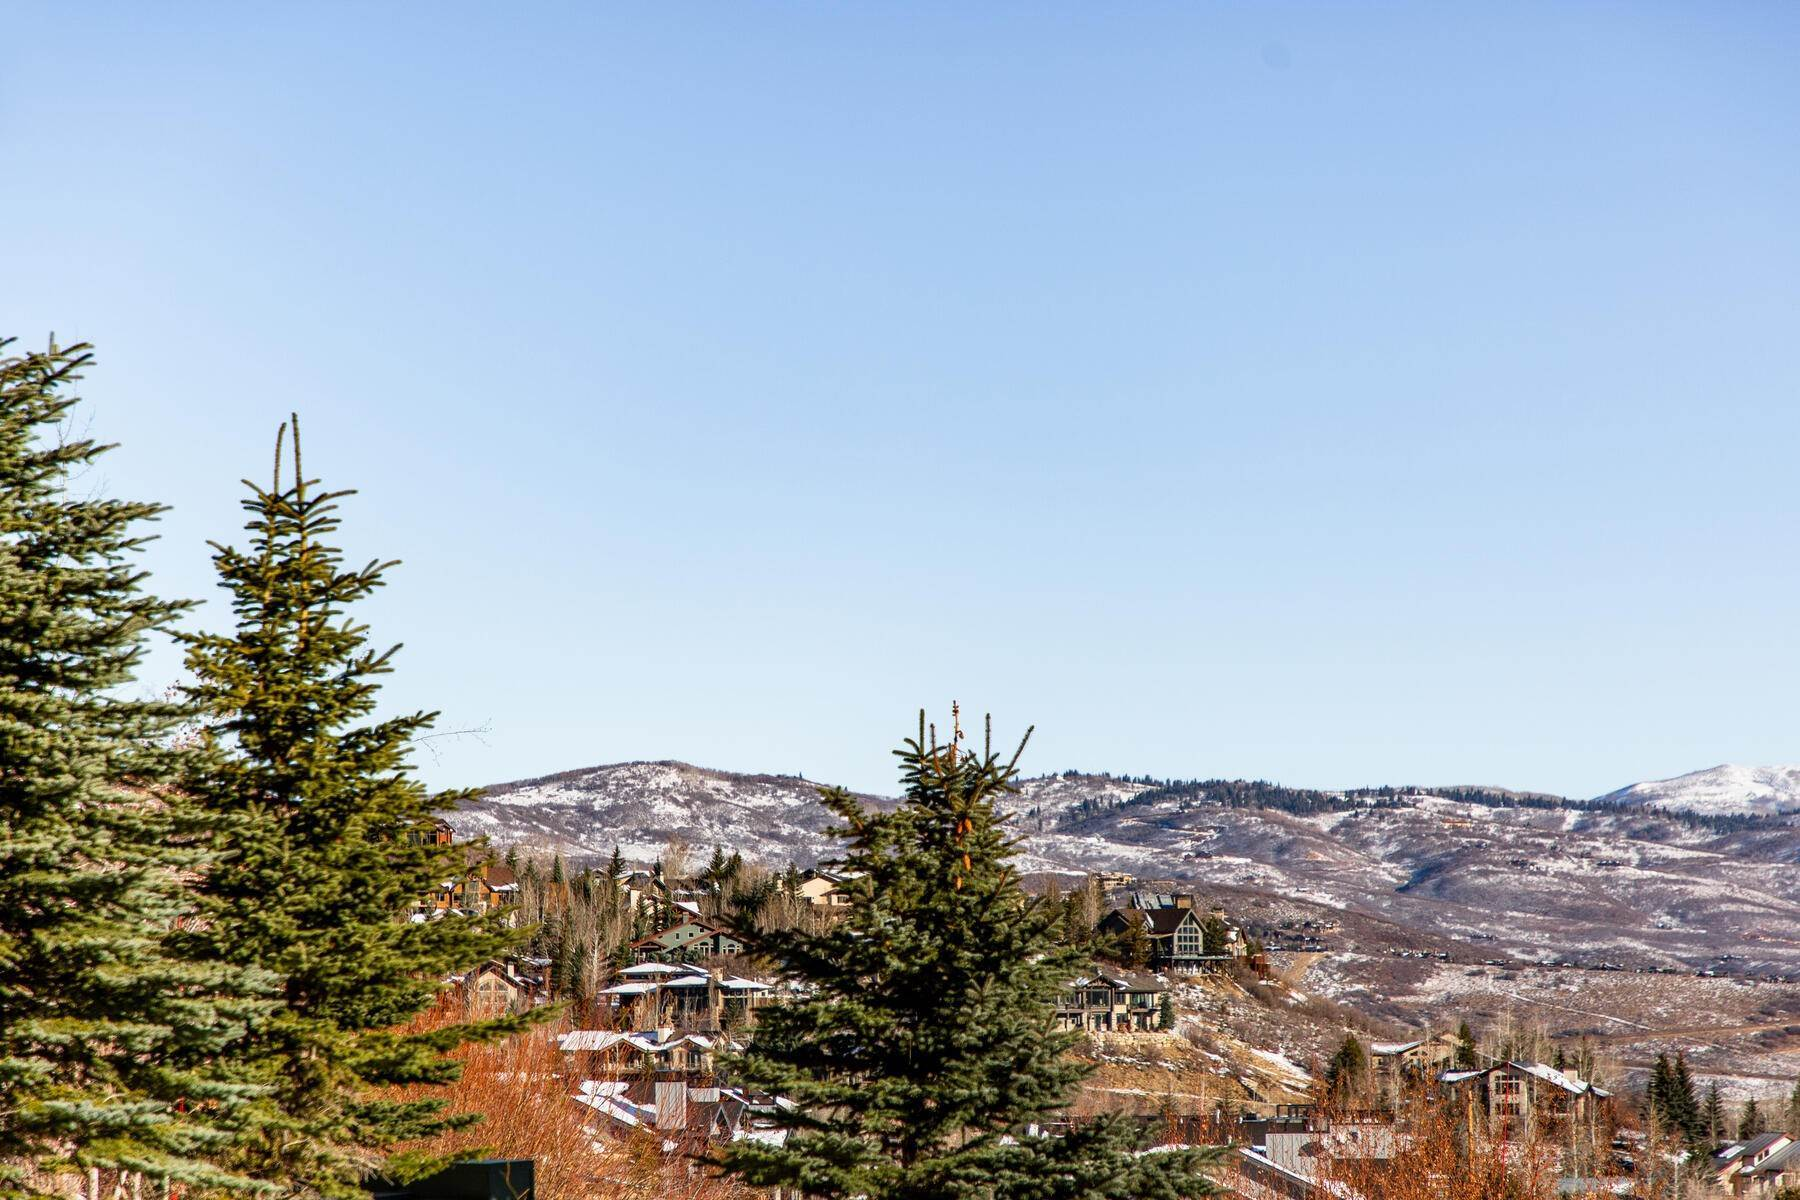 19. Condominiums for Sale at Introducing Park City's Newest Boutique Ski Hotel, The Ascent Park City! 4080 N Cooper Lane #312 Park City, Utah 84098 United States